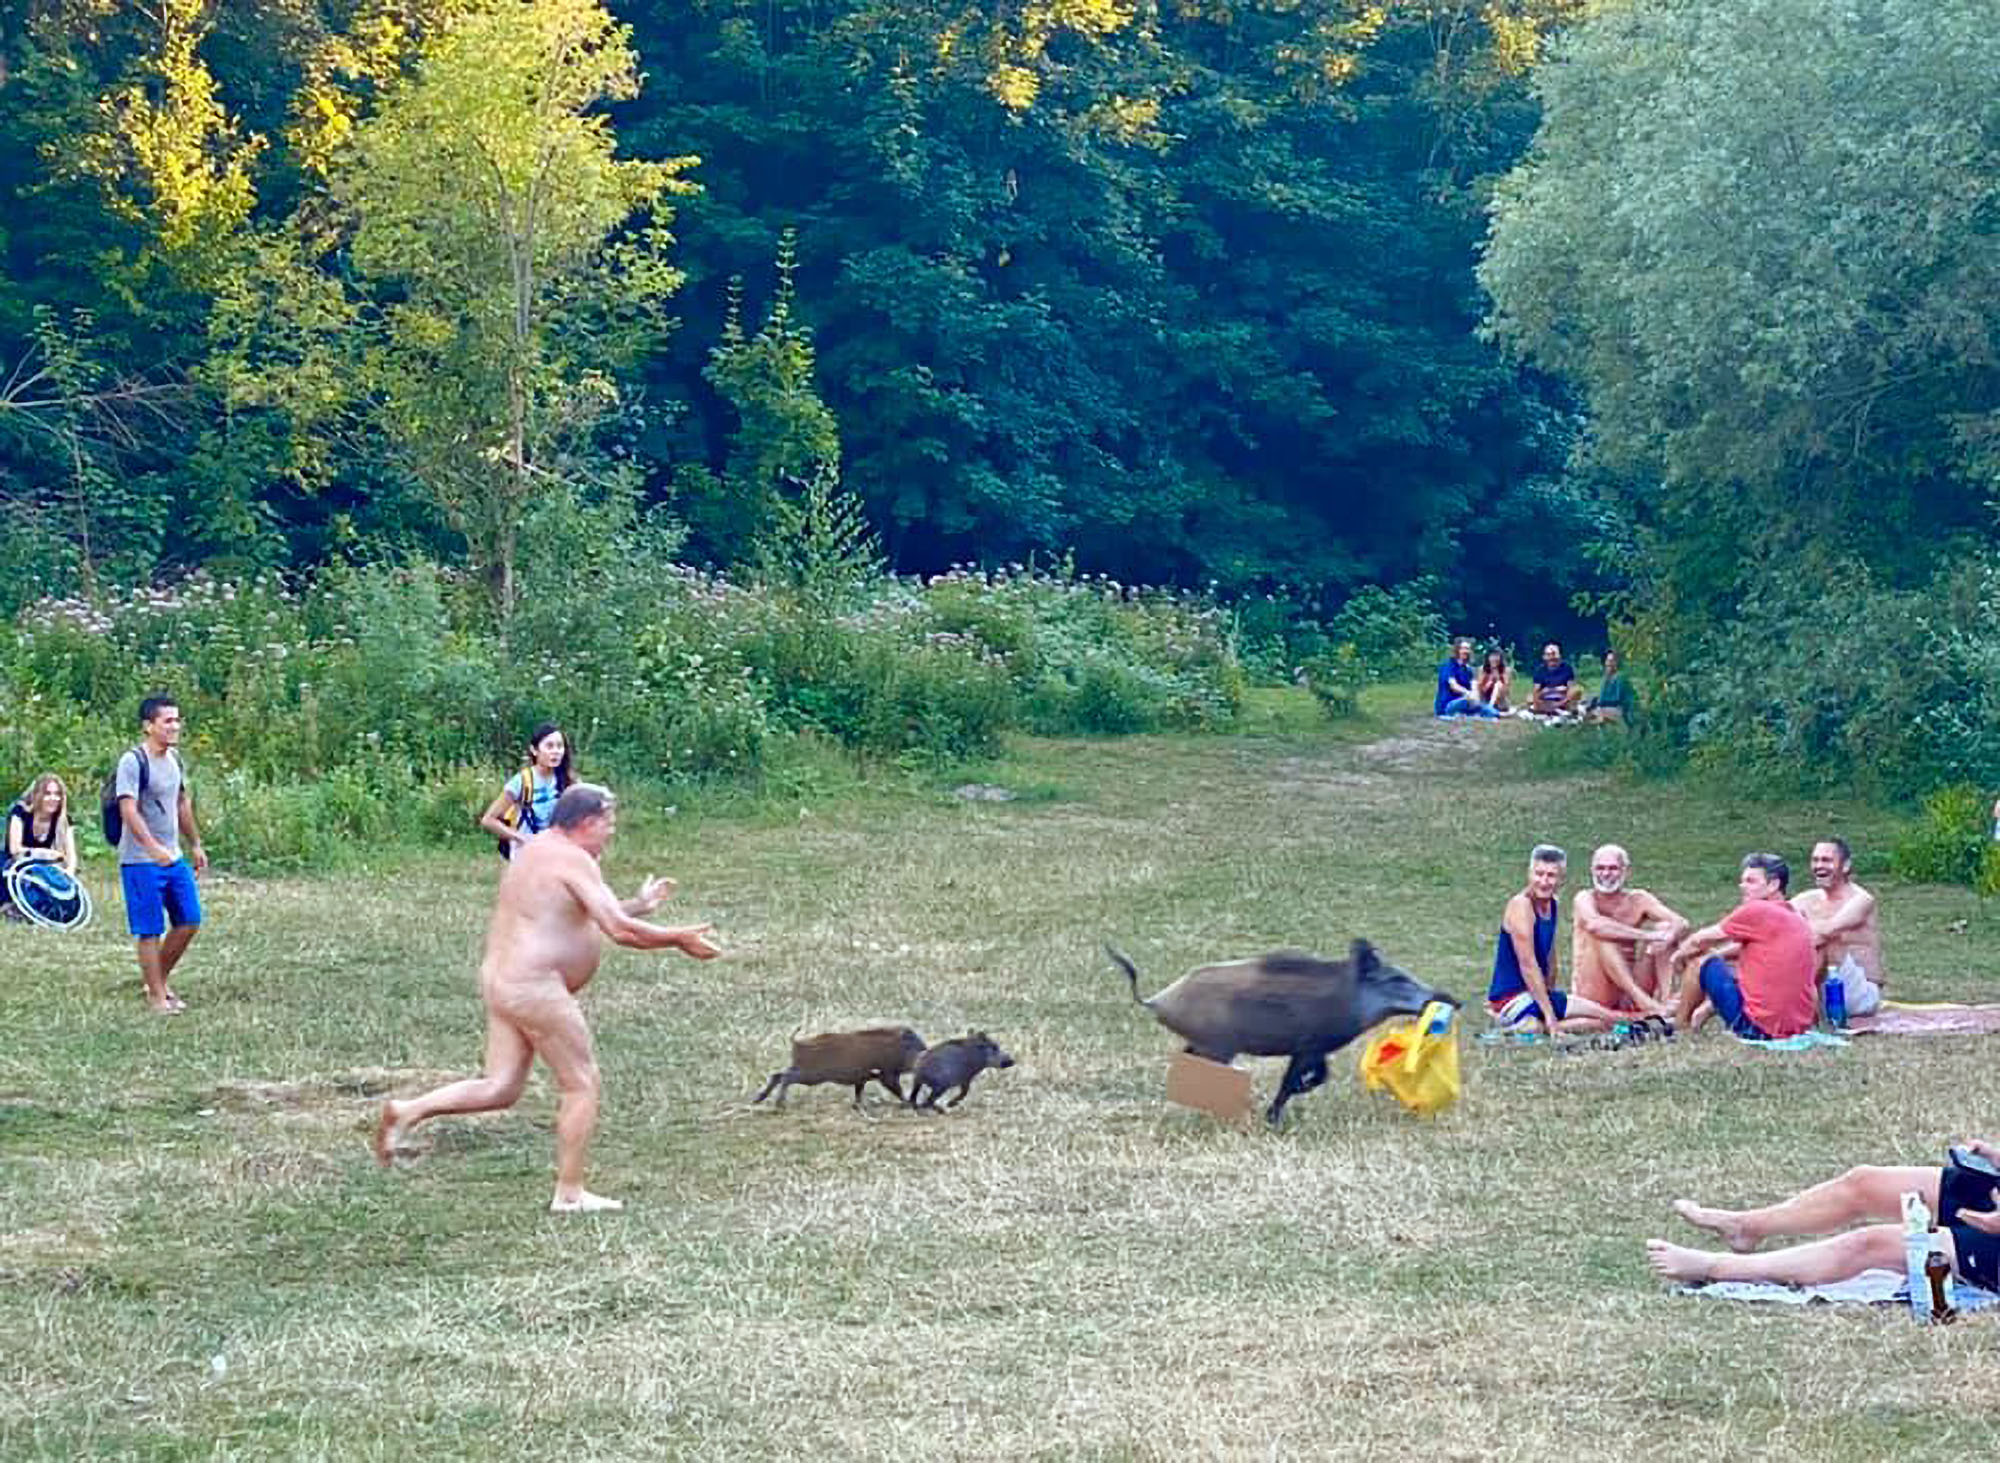 VIDEO: Naked man gives chase as wild boar steals bag